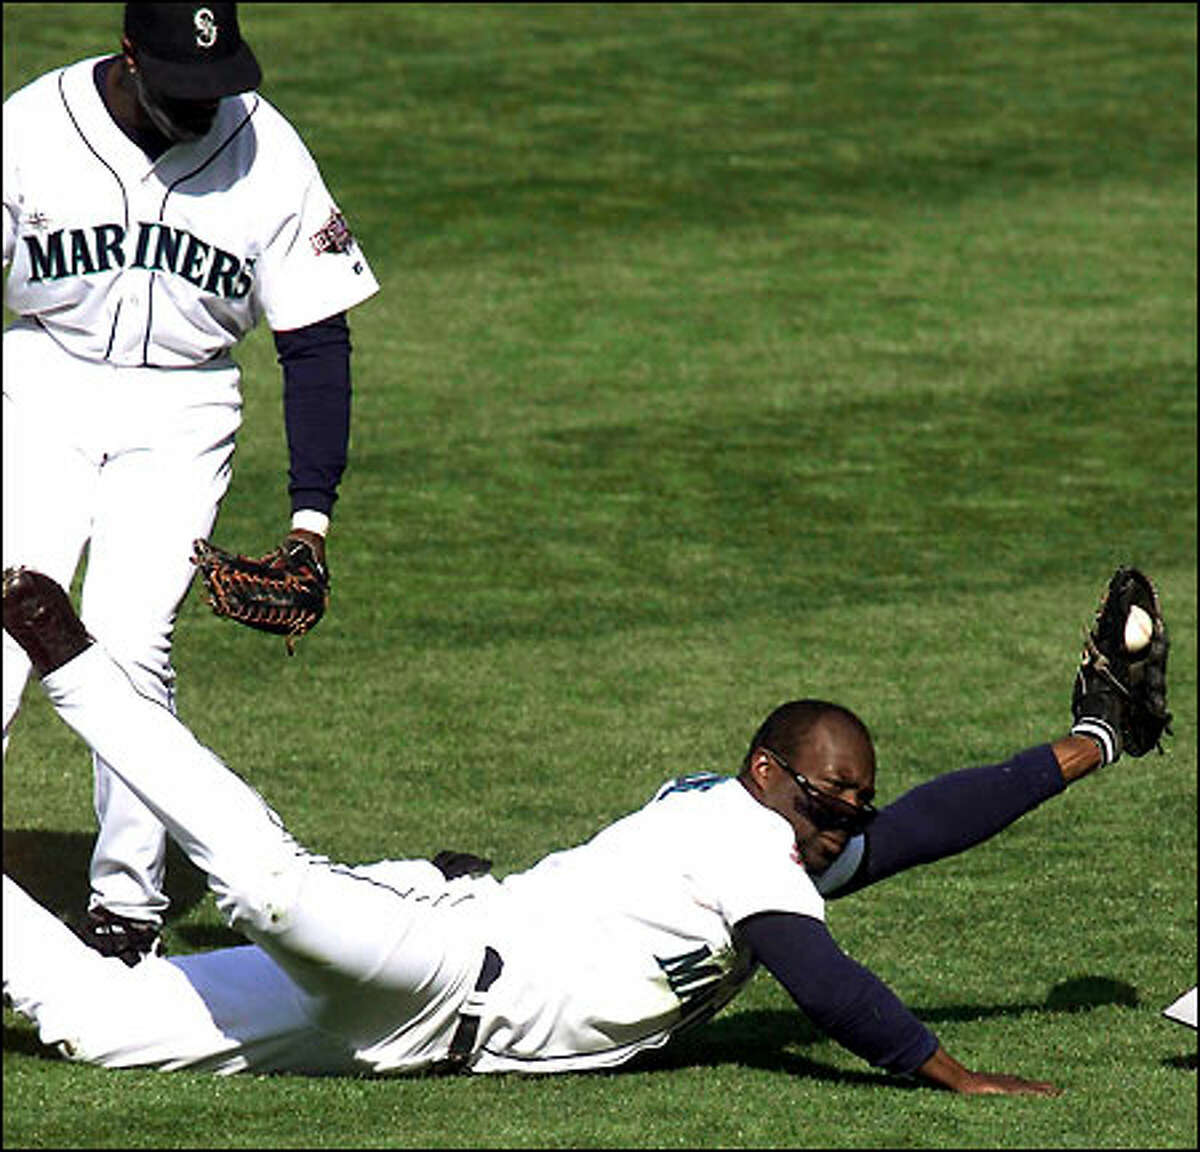 Mariners shortstop Mark McLemore makes a diving catch for a blooper by Cleveland's Juan Gonzalez in the second inning. Center fielder Mike Cameron looks on.